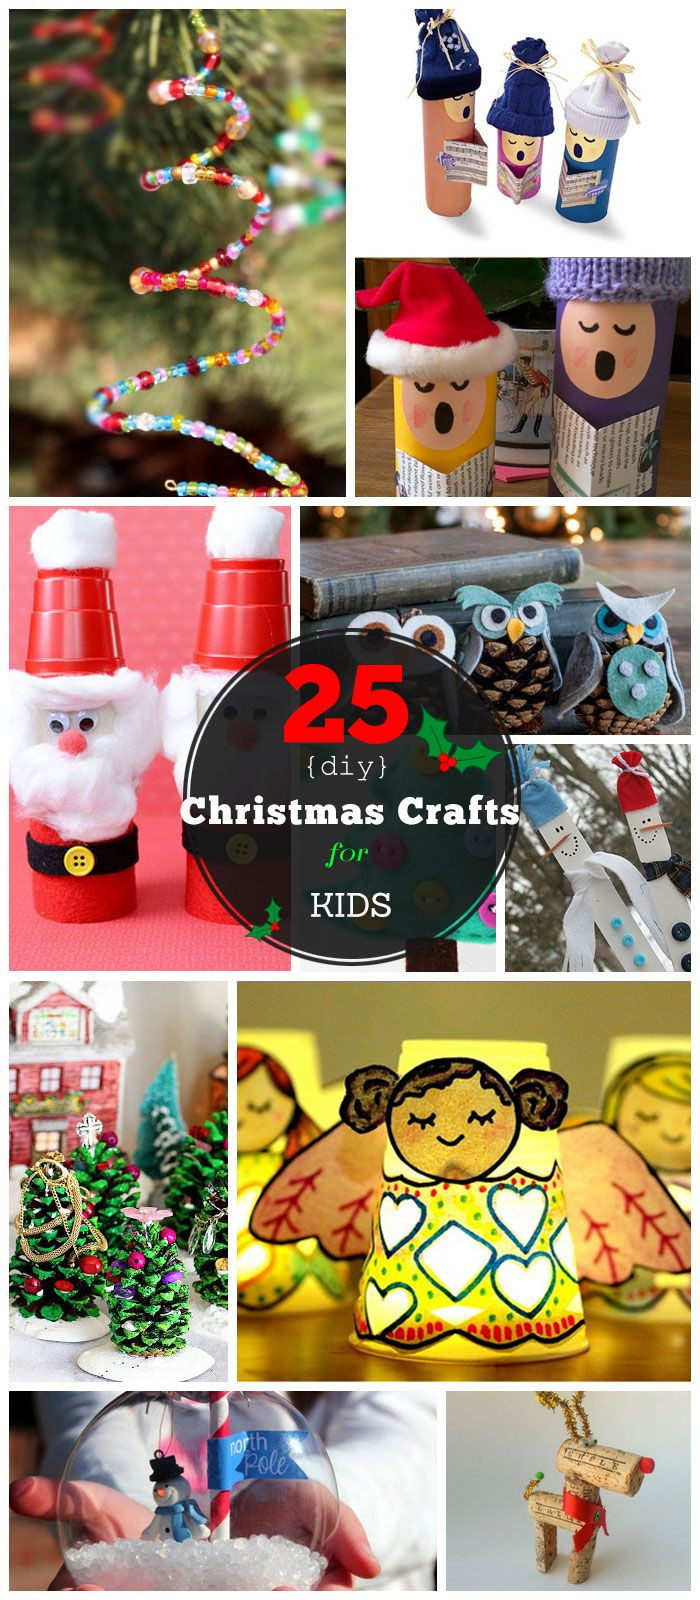 Best ideas about DIY Crafts For Kids . Save or Pin 30 Christmas Crafts For Kids to Make DIY Now.